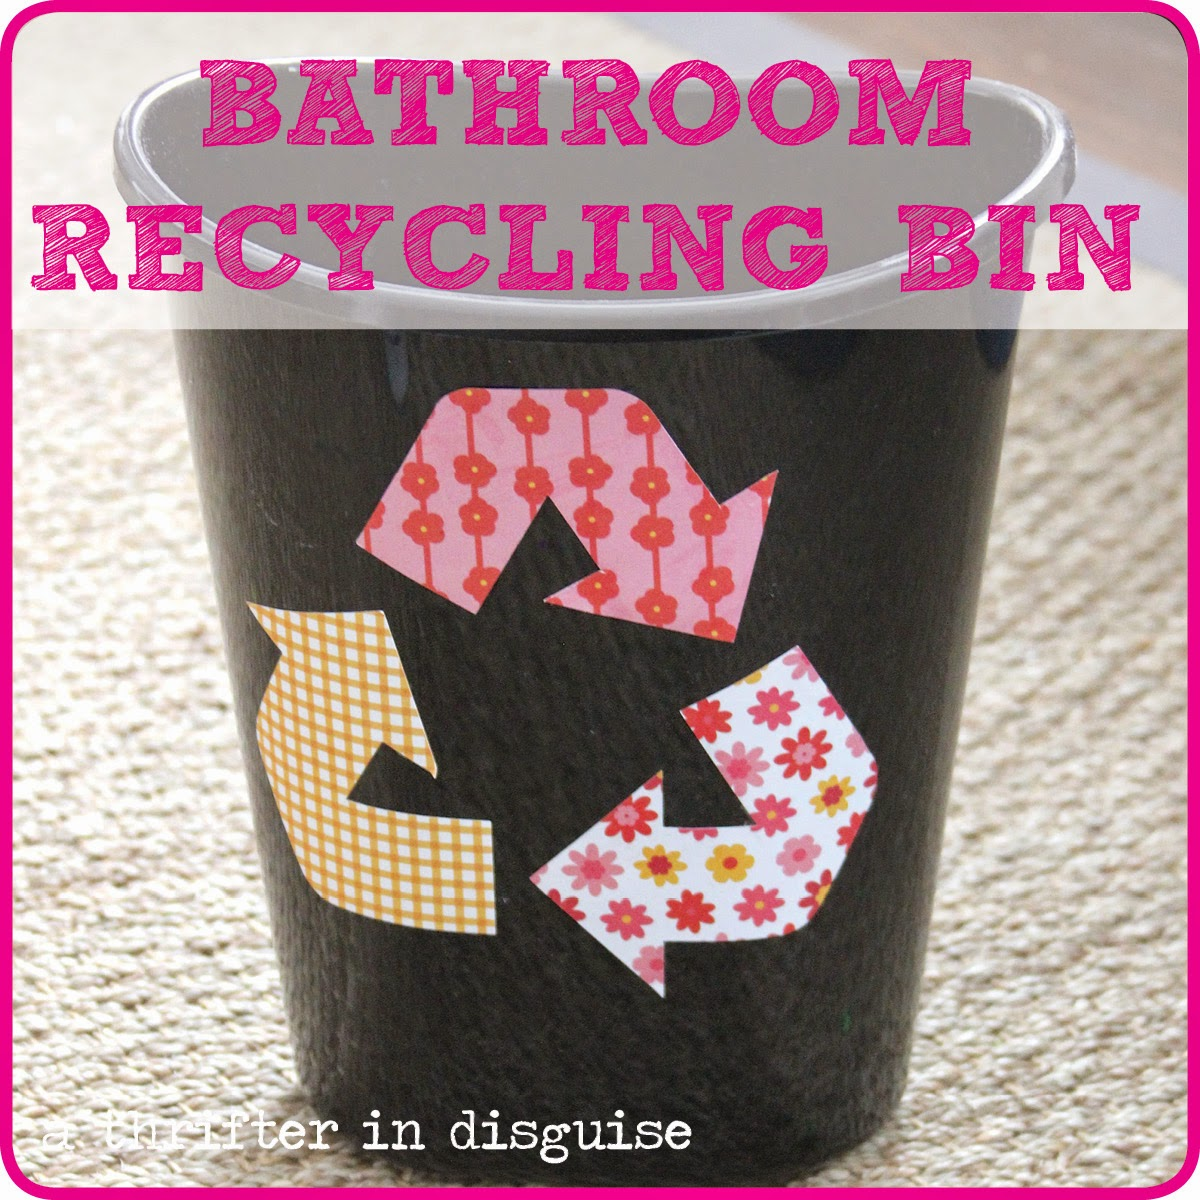 Bathroom Recycling Bin